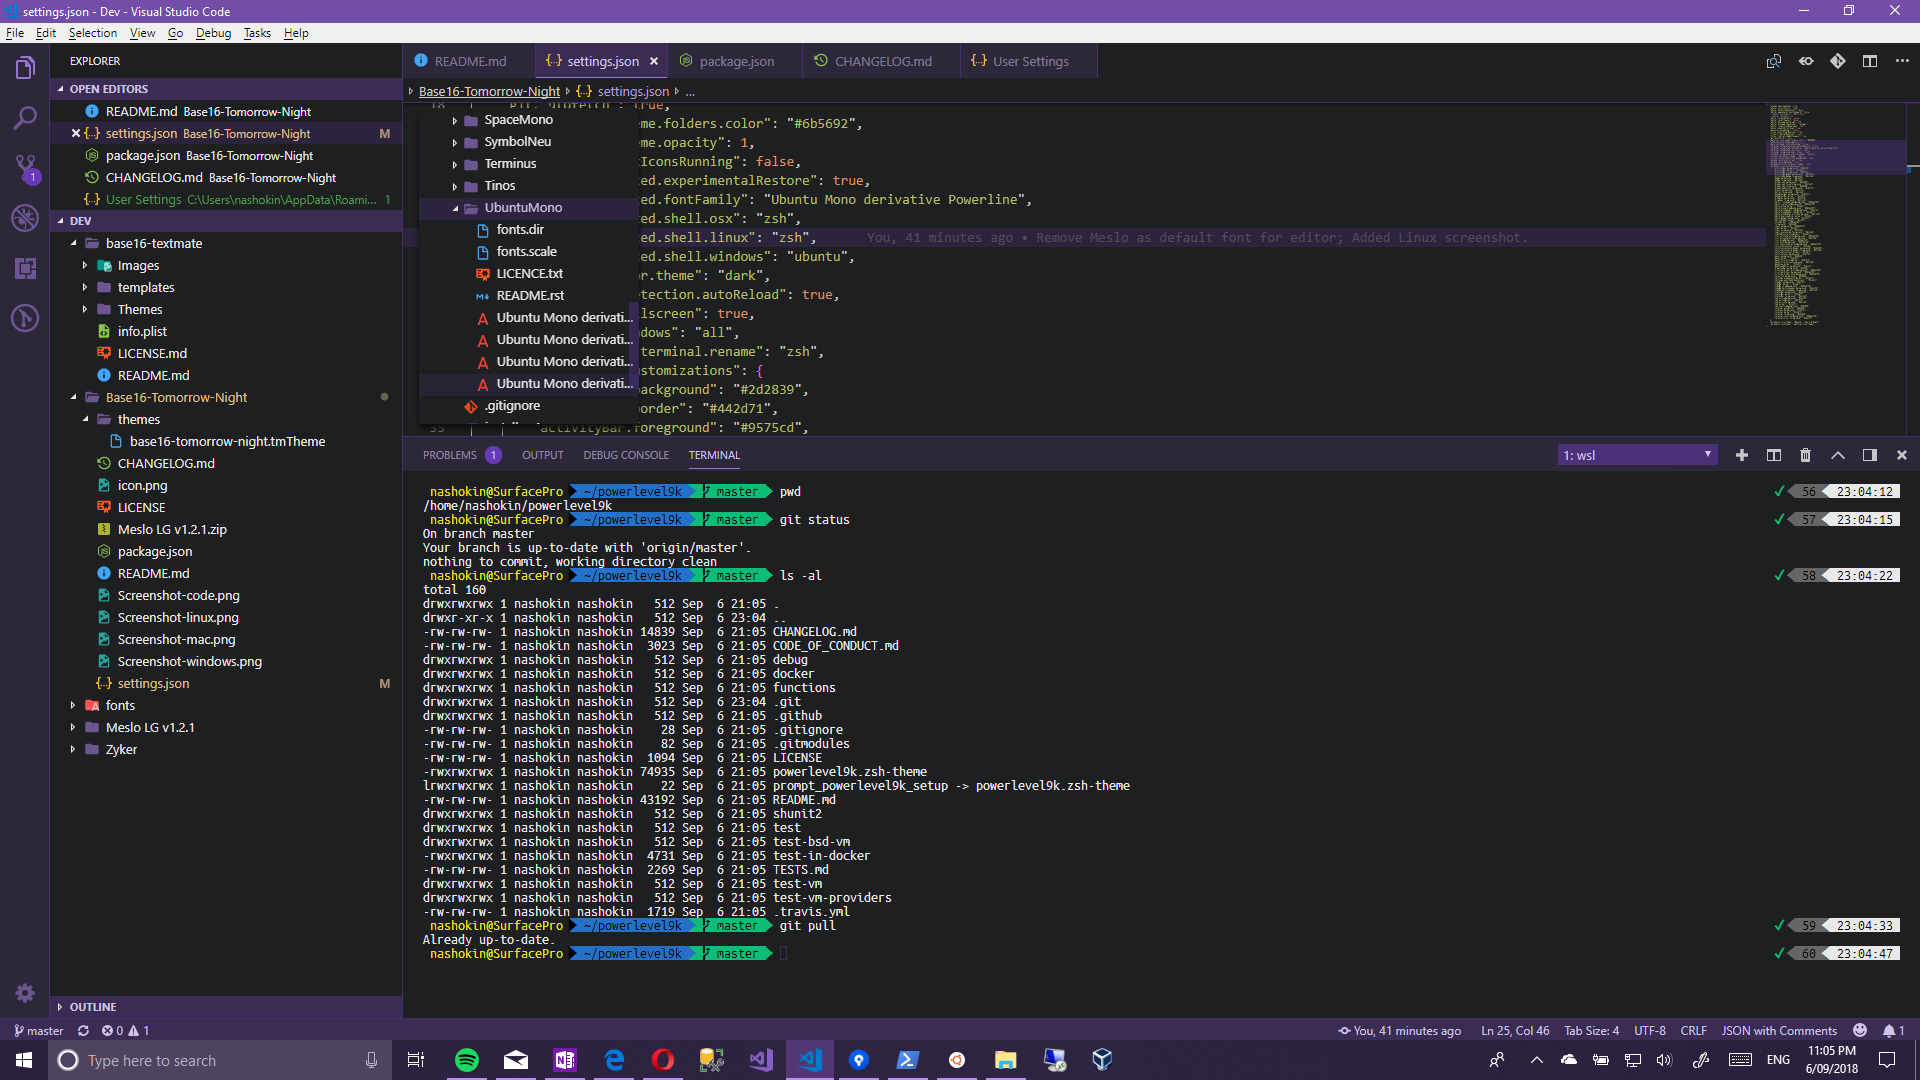 Base16 Visual Studio Code windows